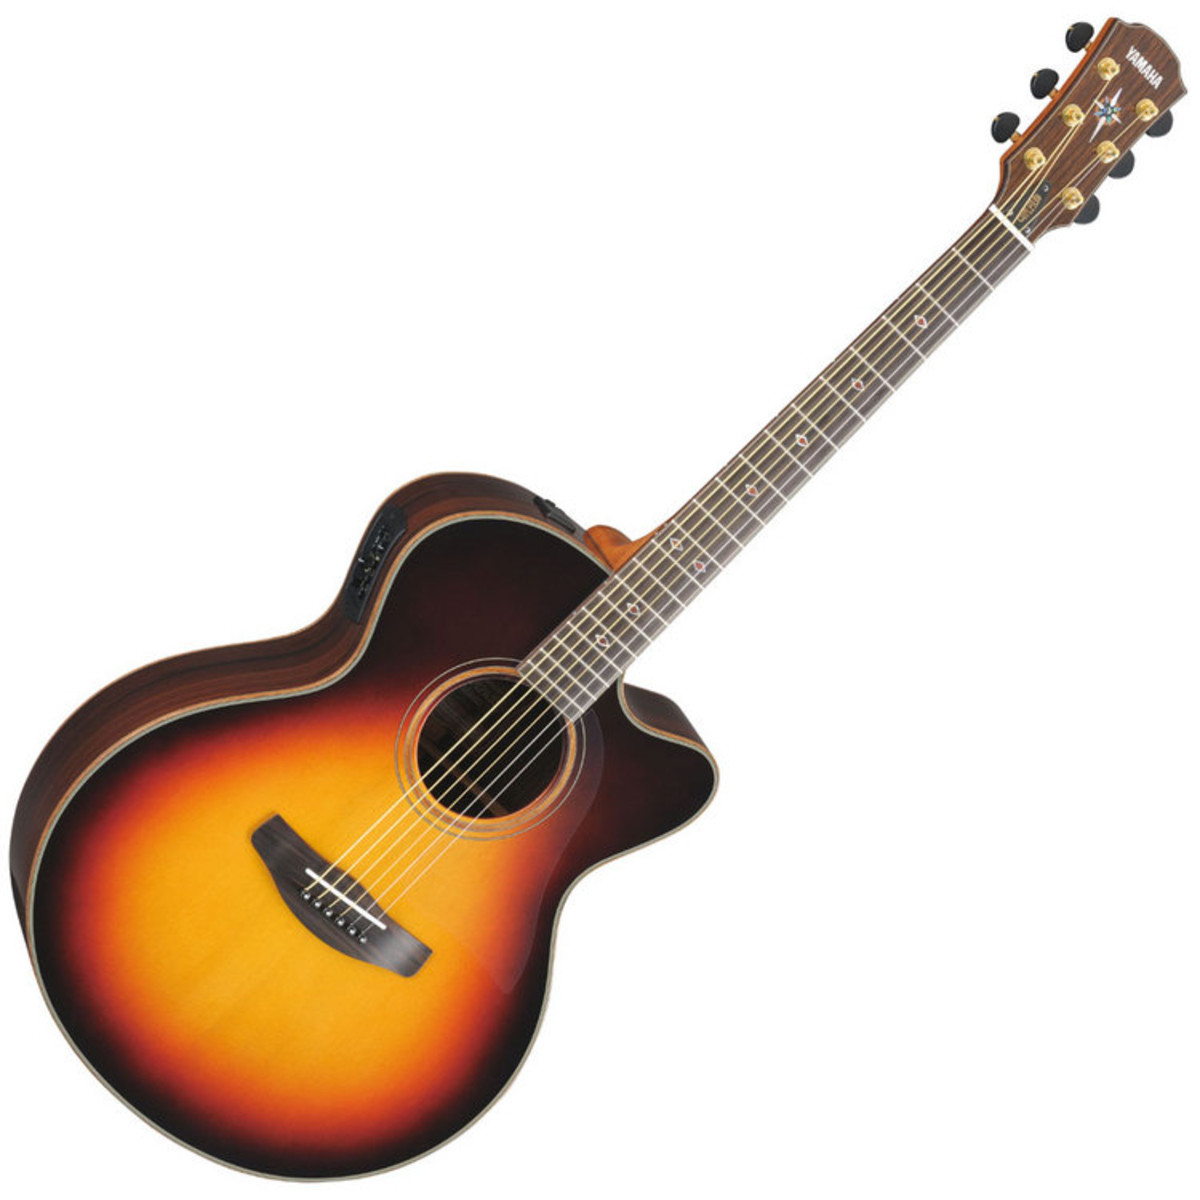 Yamaha cpx1200 electro acoustic guitar vintage sunburst for Yamaha acoustic bass guitar